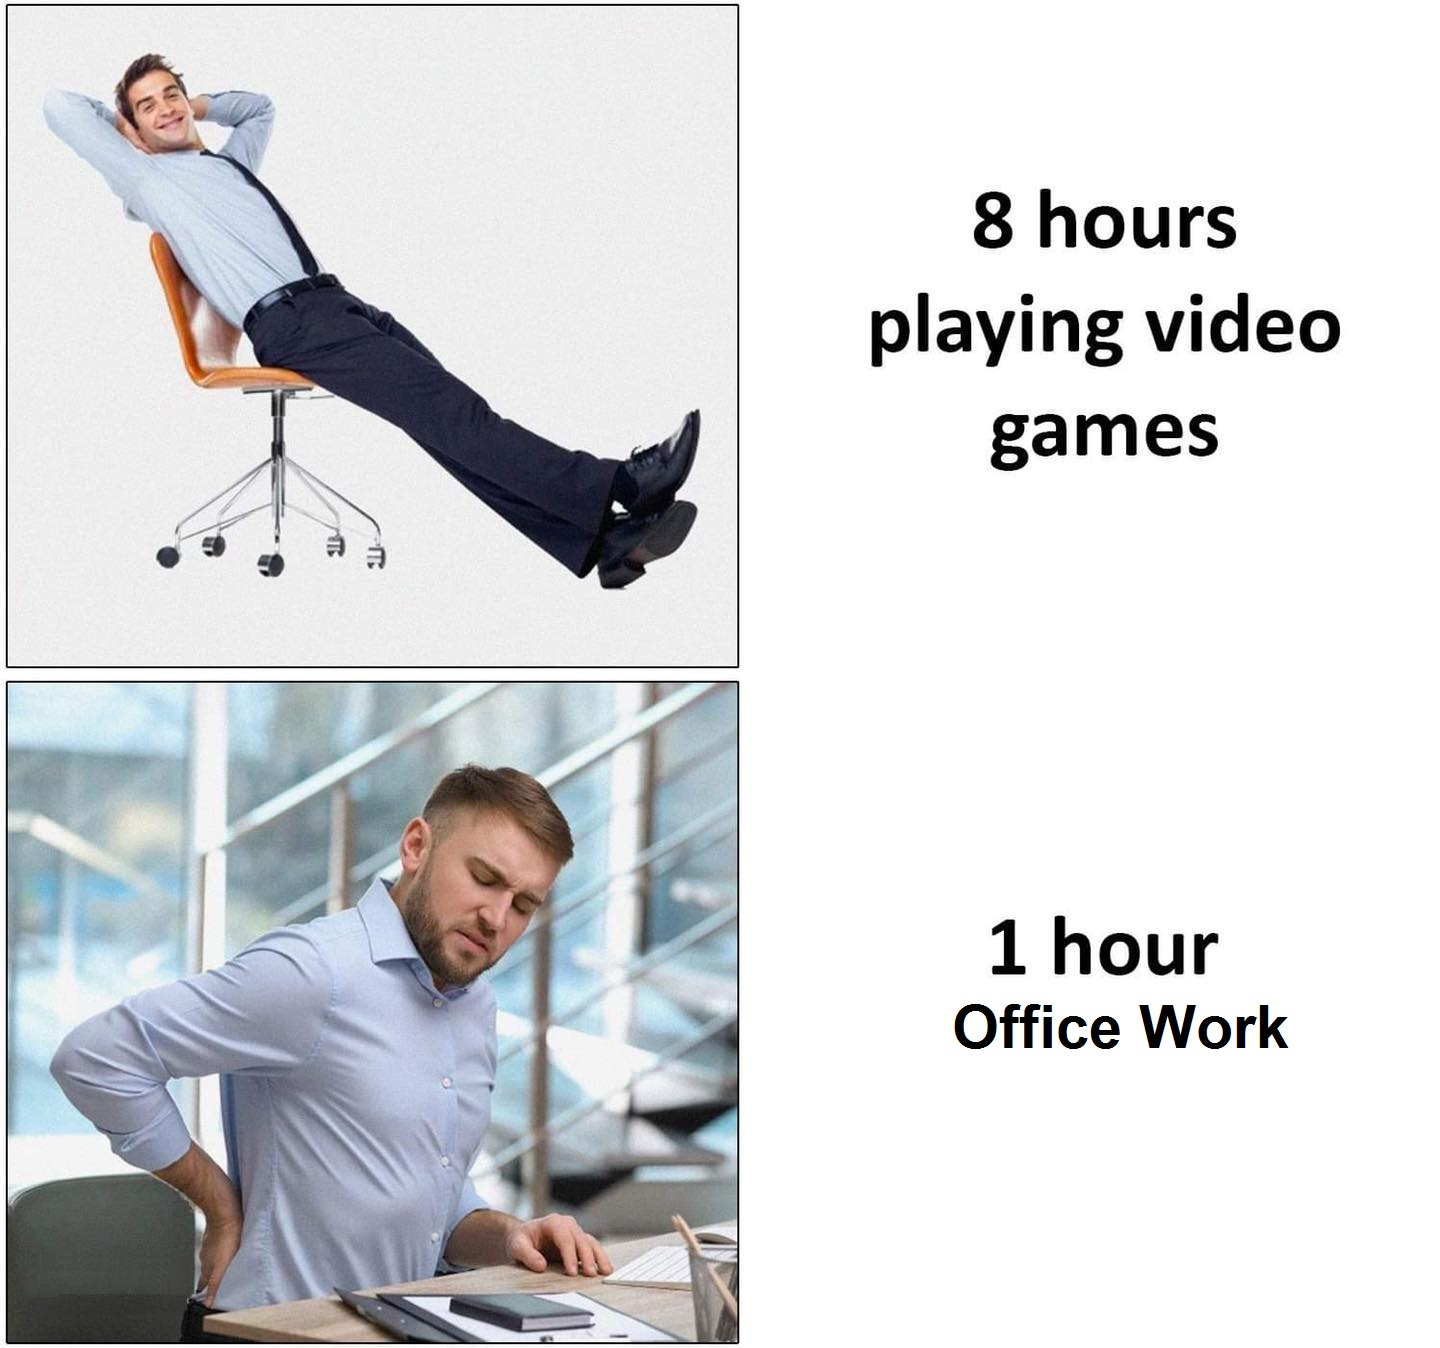 Programmer 8hours playing video games vs 1hour office work